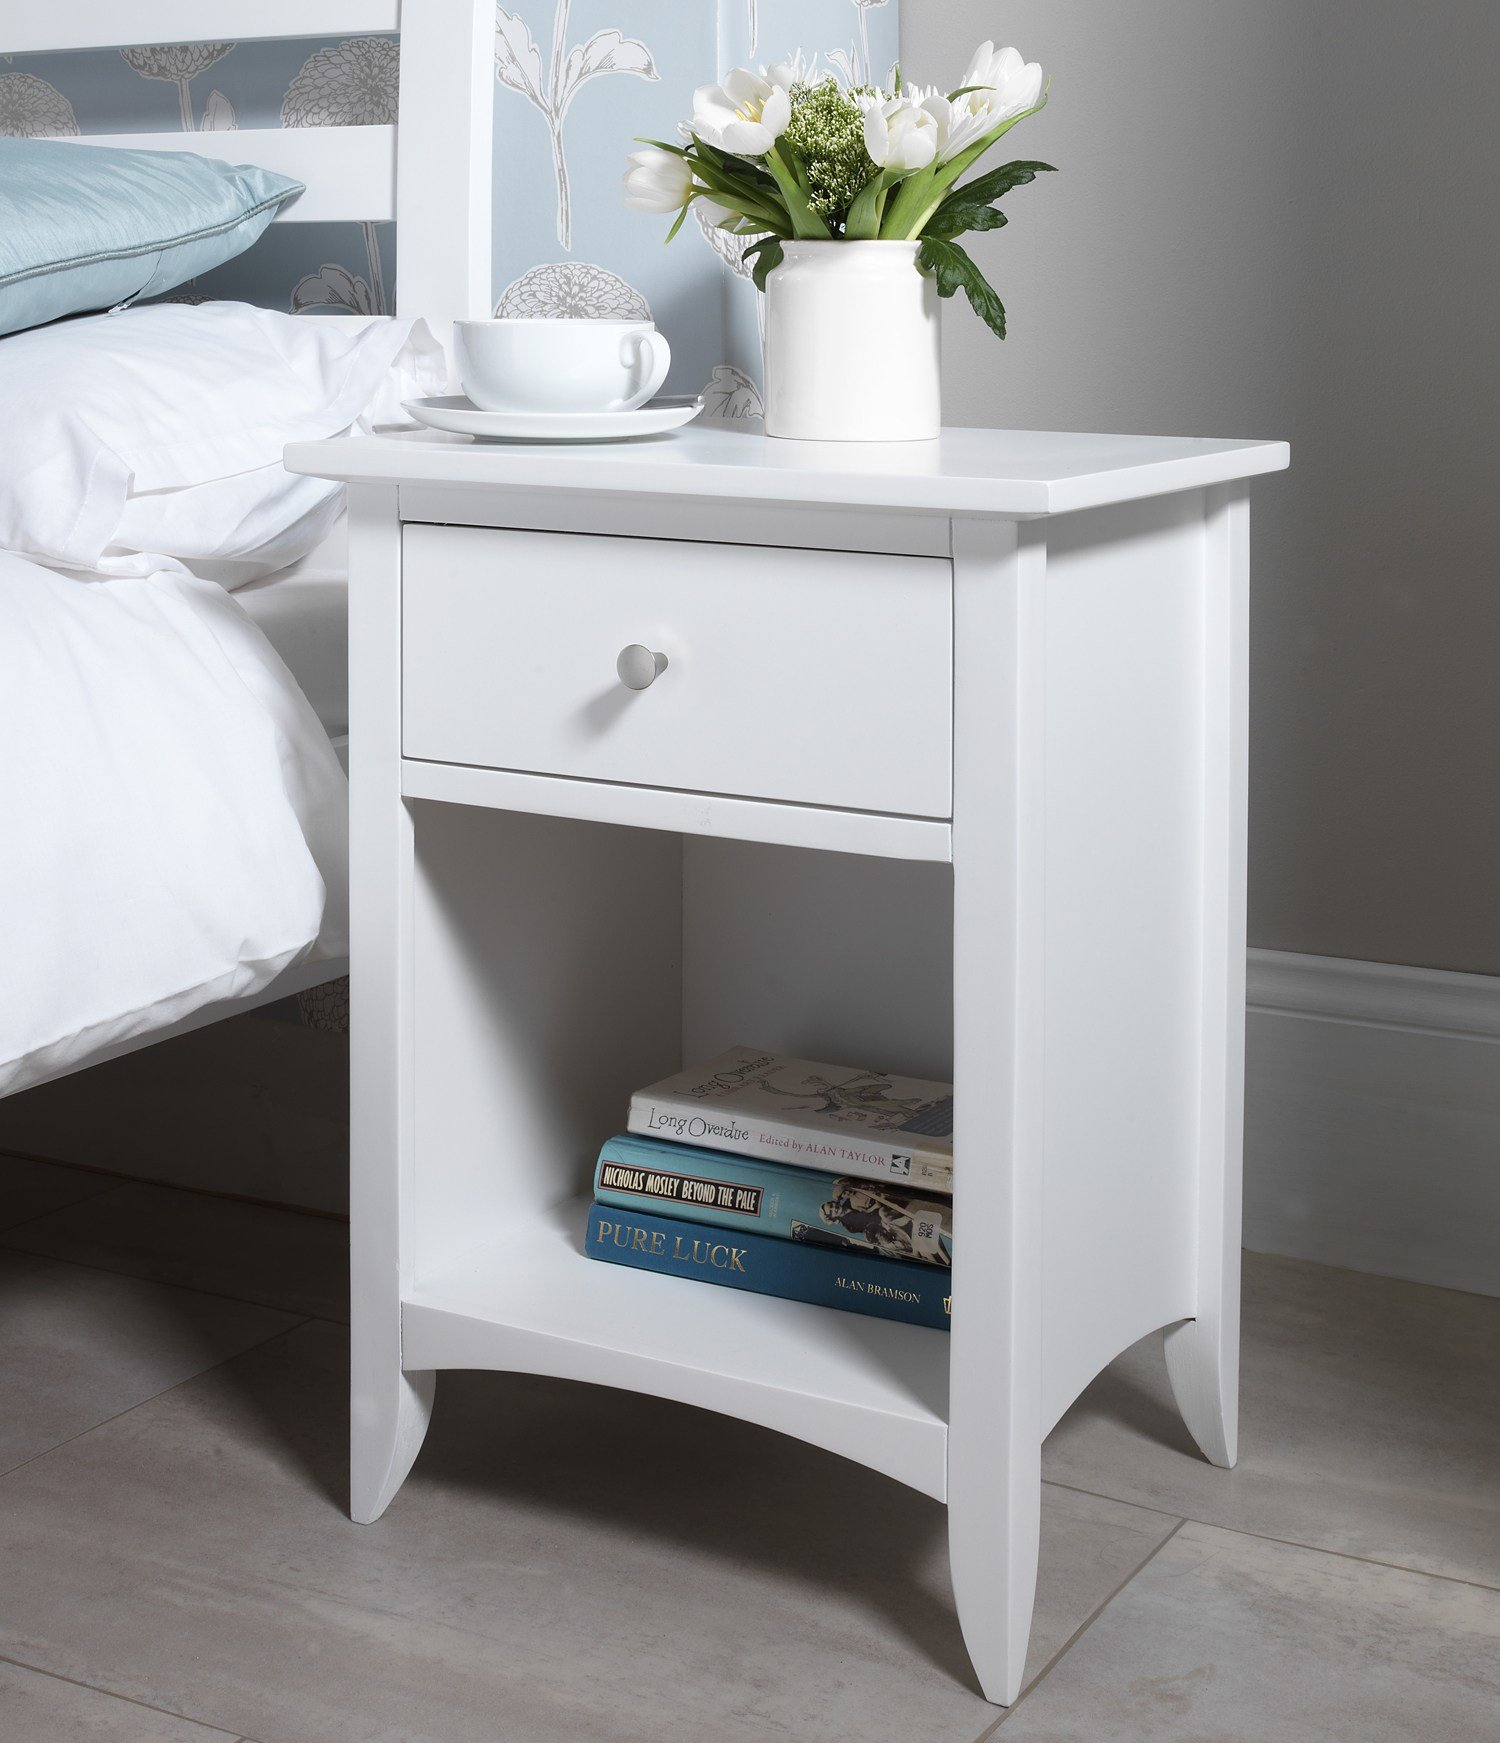 Best Edward Hopper White Furniture Bedside Table Chest Of With Pictures